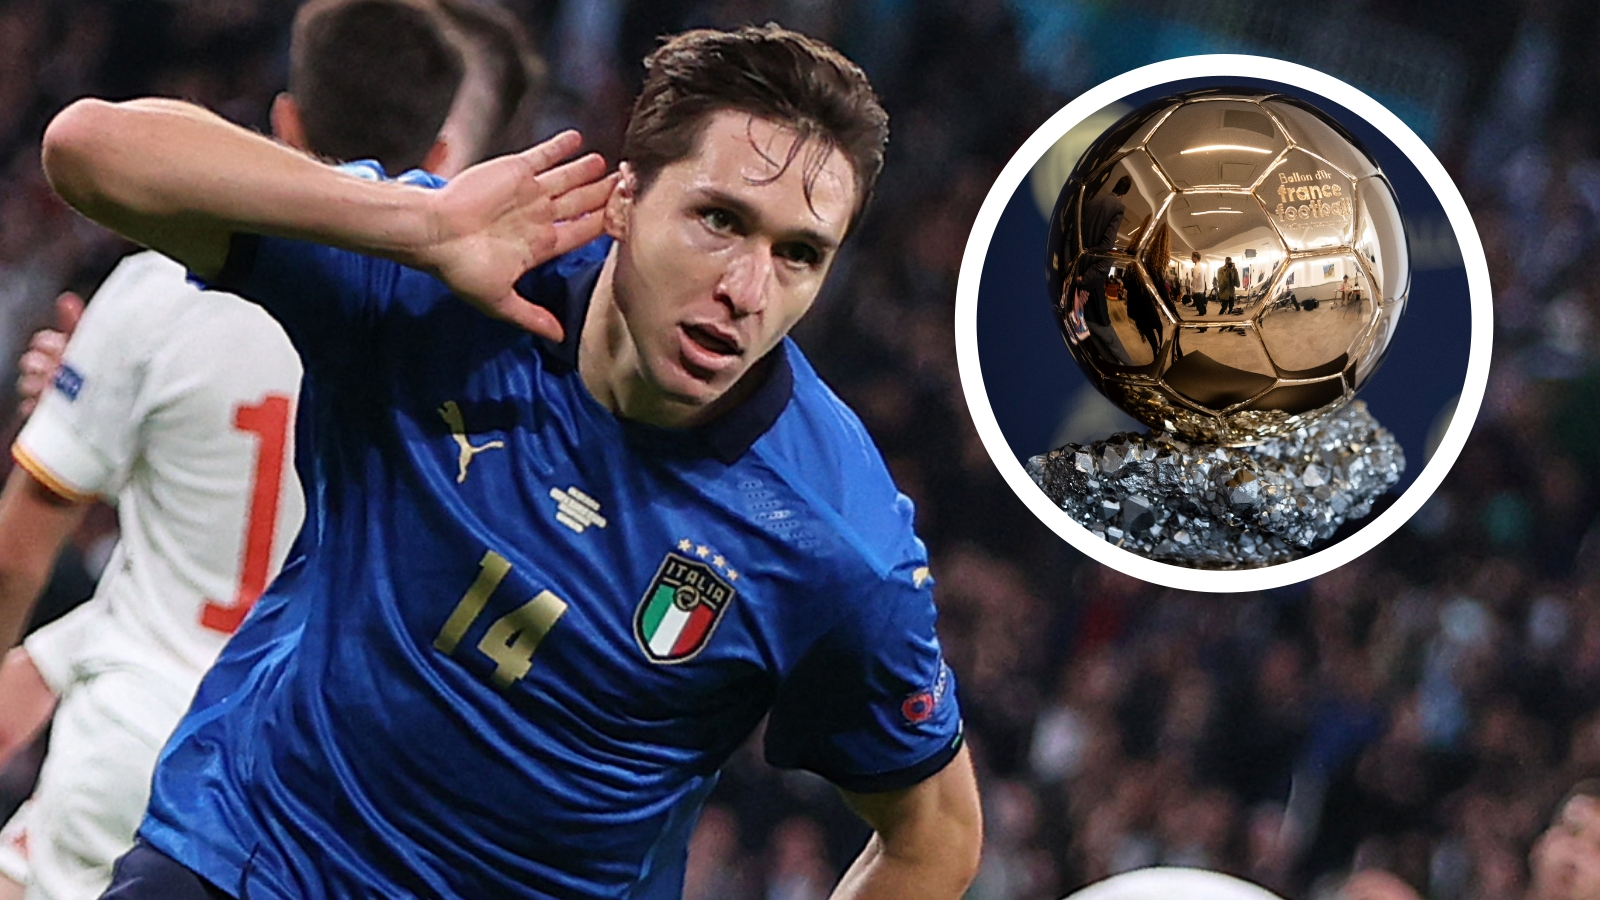 Juventus star Chiesa tipped for Ballon d'Or win in next 'three or four years' by Tacchinardi